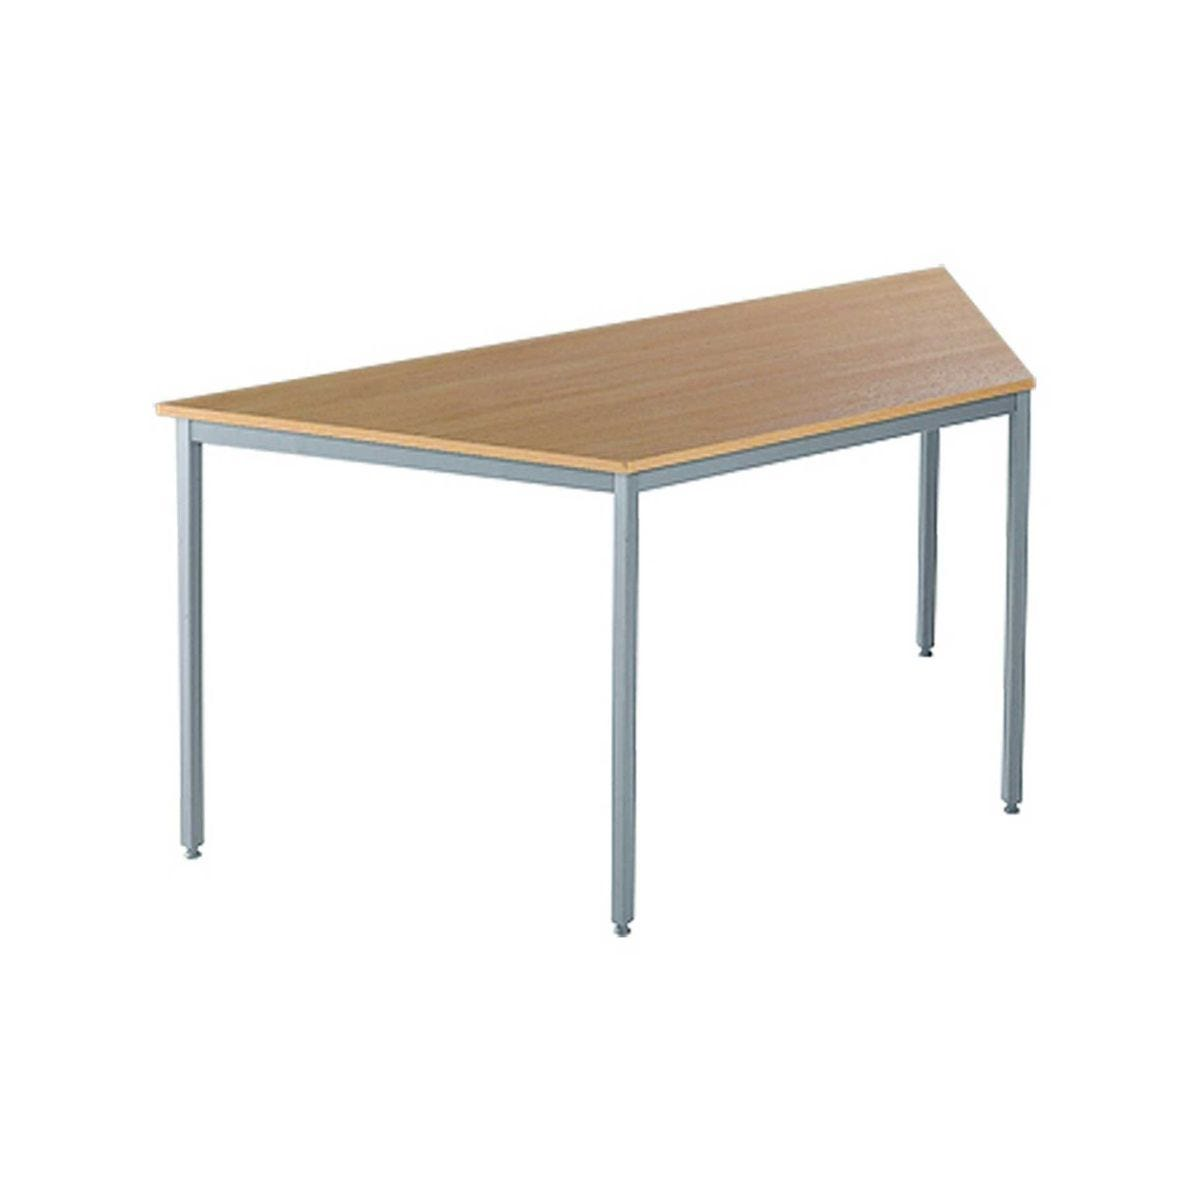 Flexi table trapezoidal table with silver frame beech for Trapezoid table